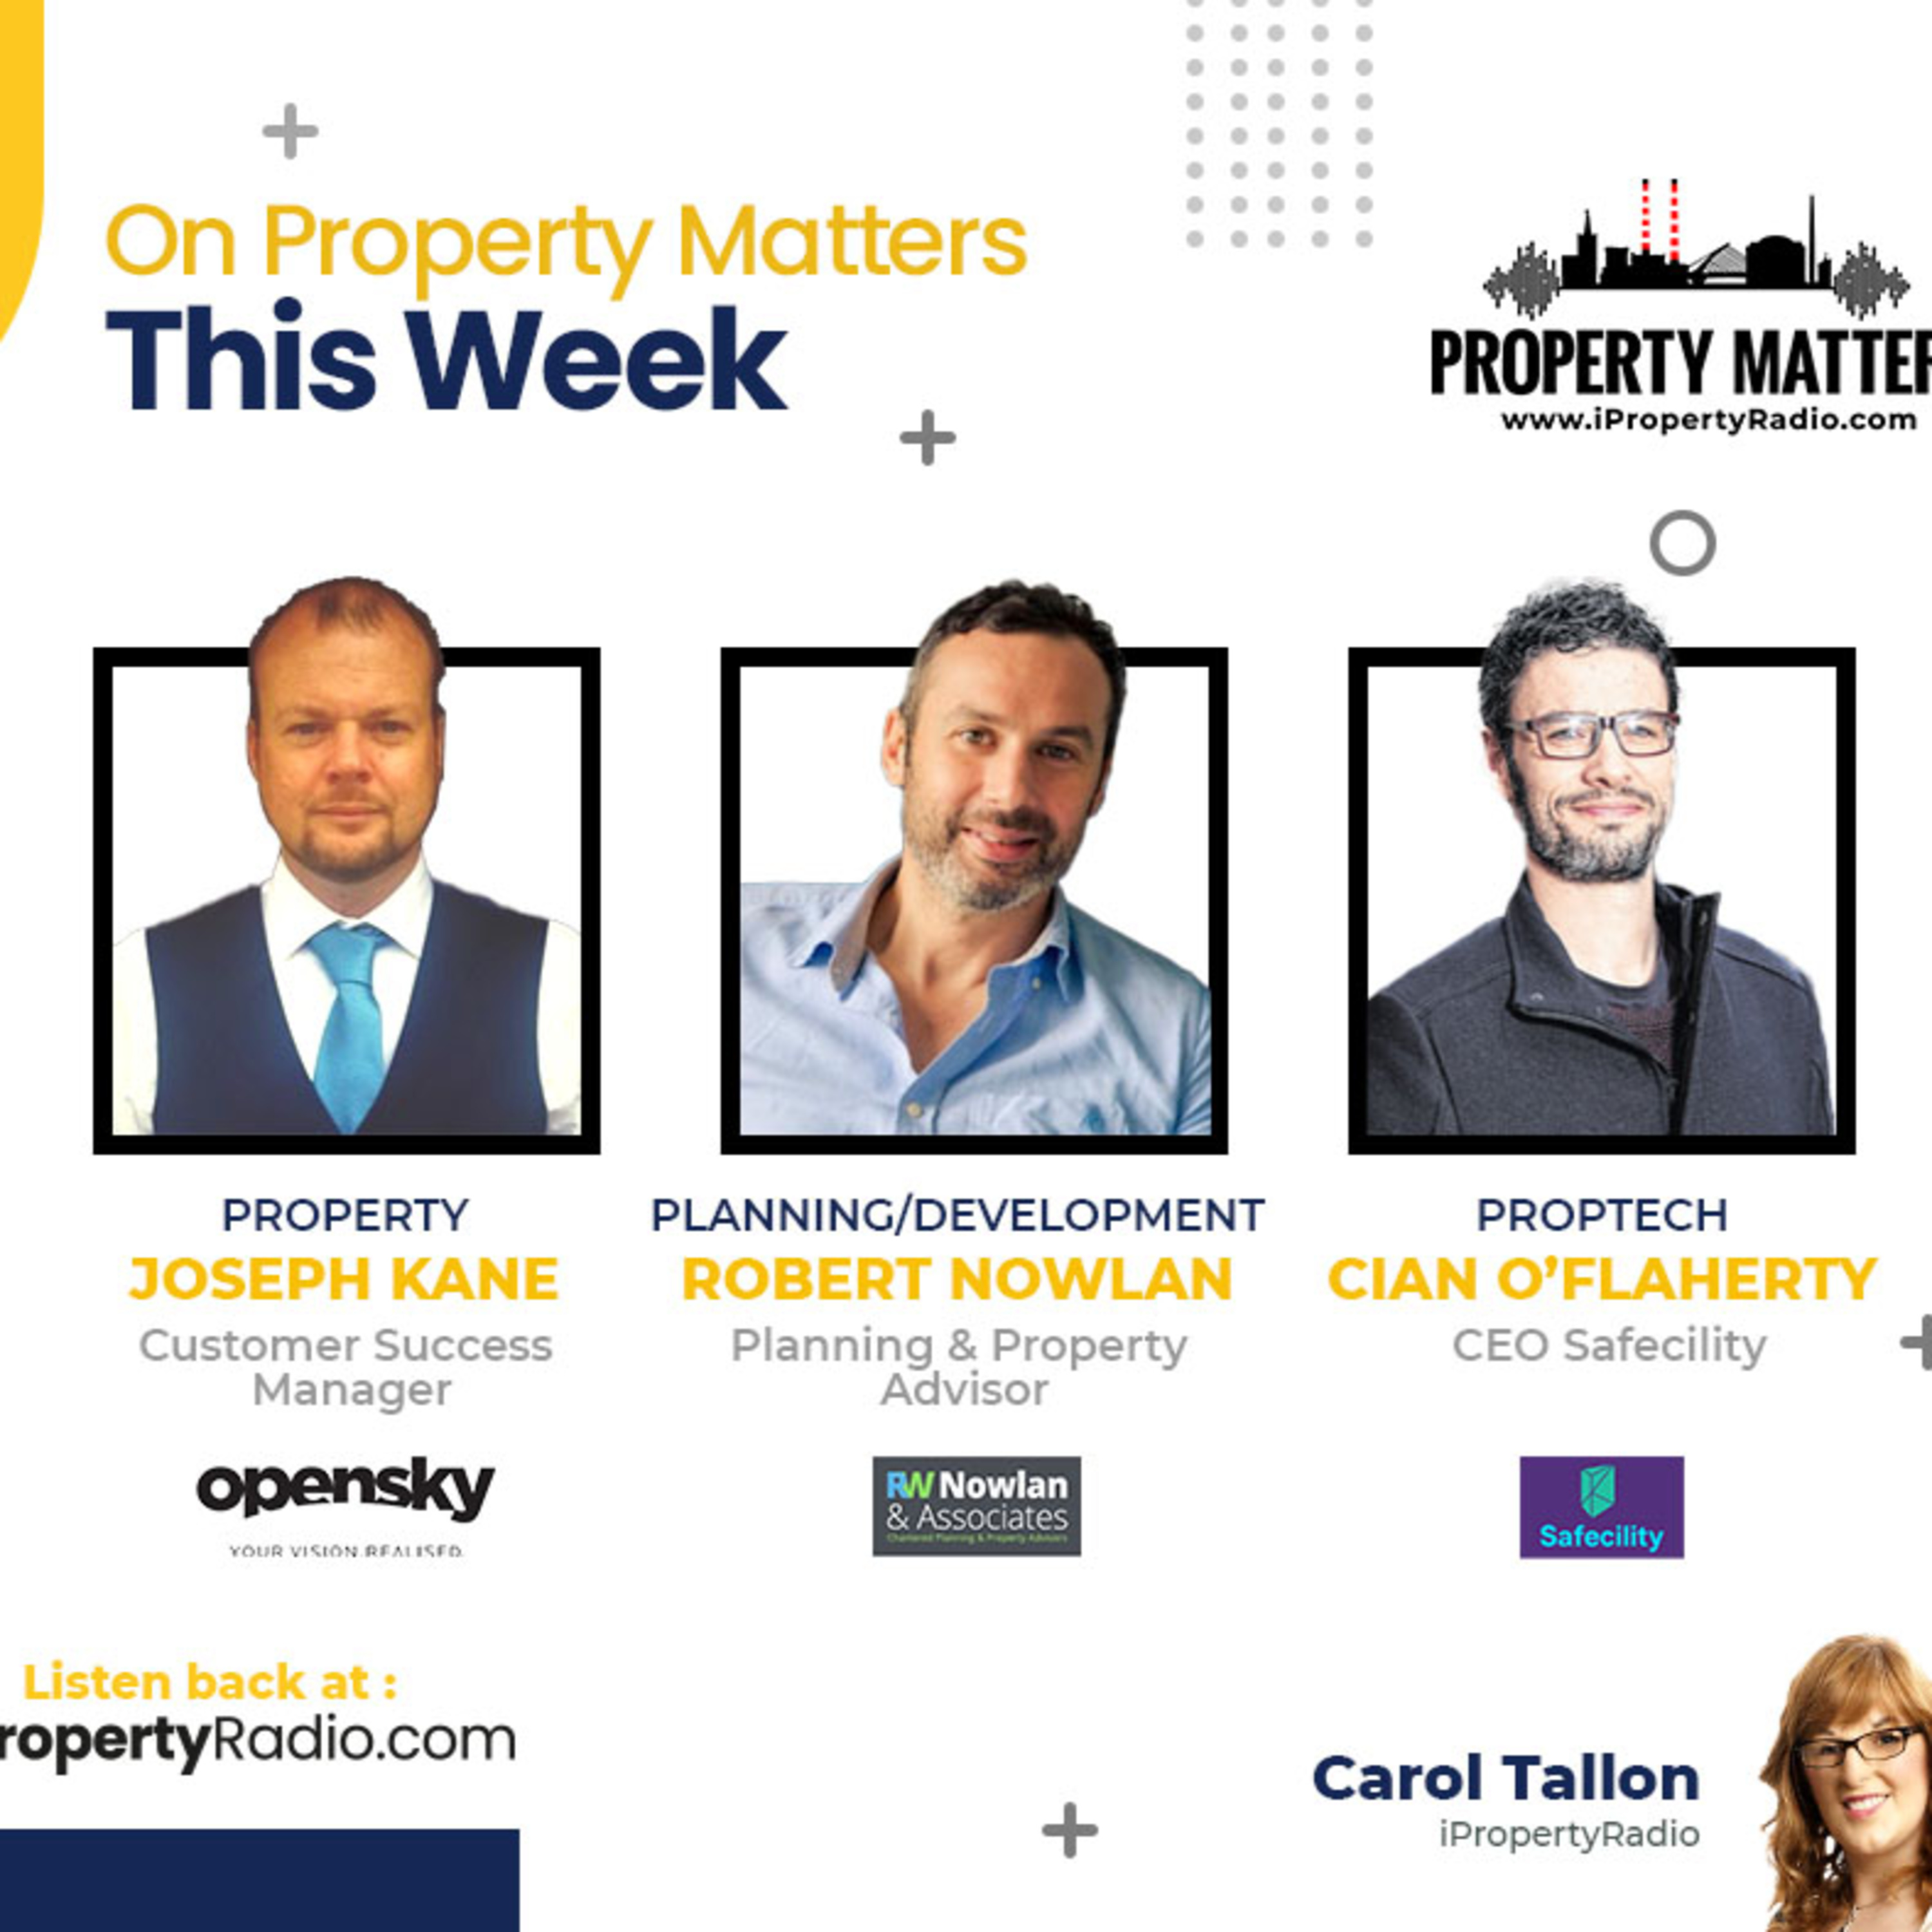 Property Matters on iPropertyRadio - January 26th 2021: Open Sky, RW Nowlan & Associates and Safecility